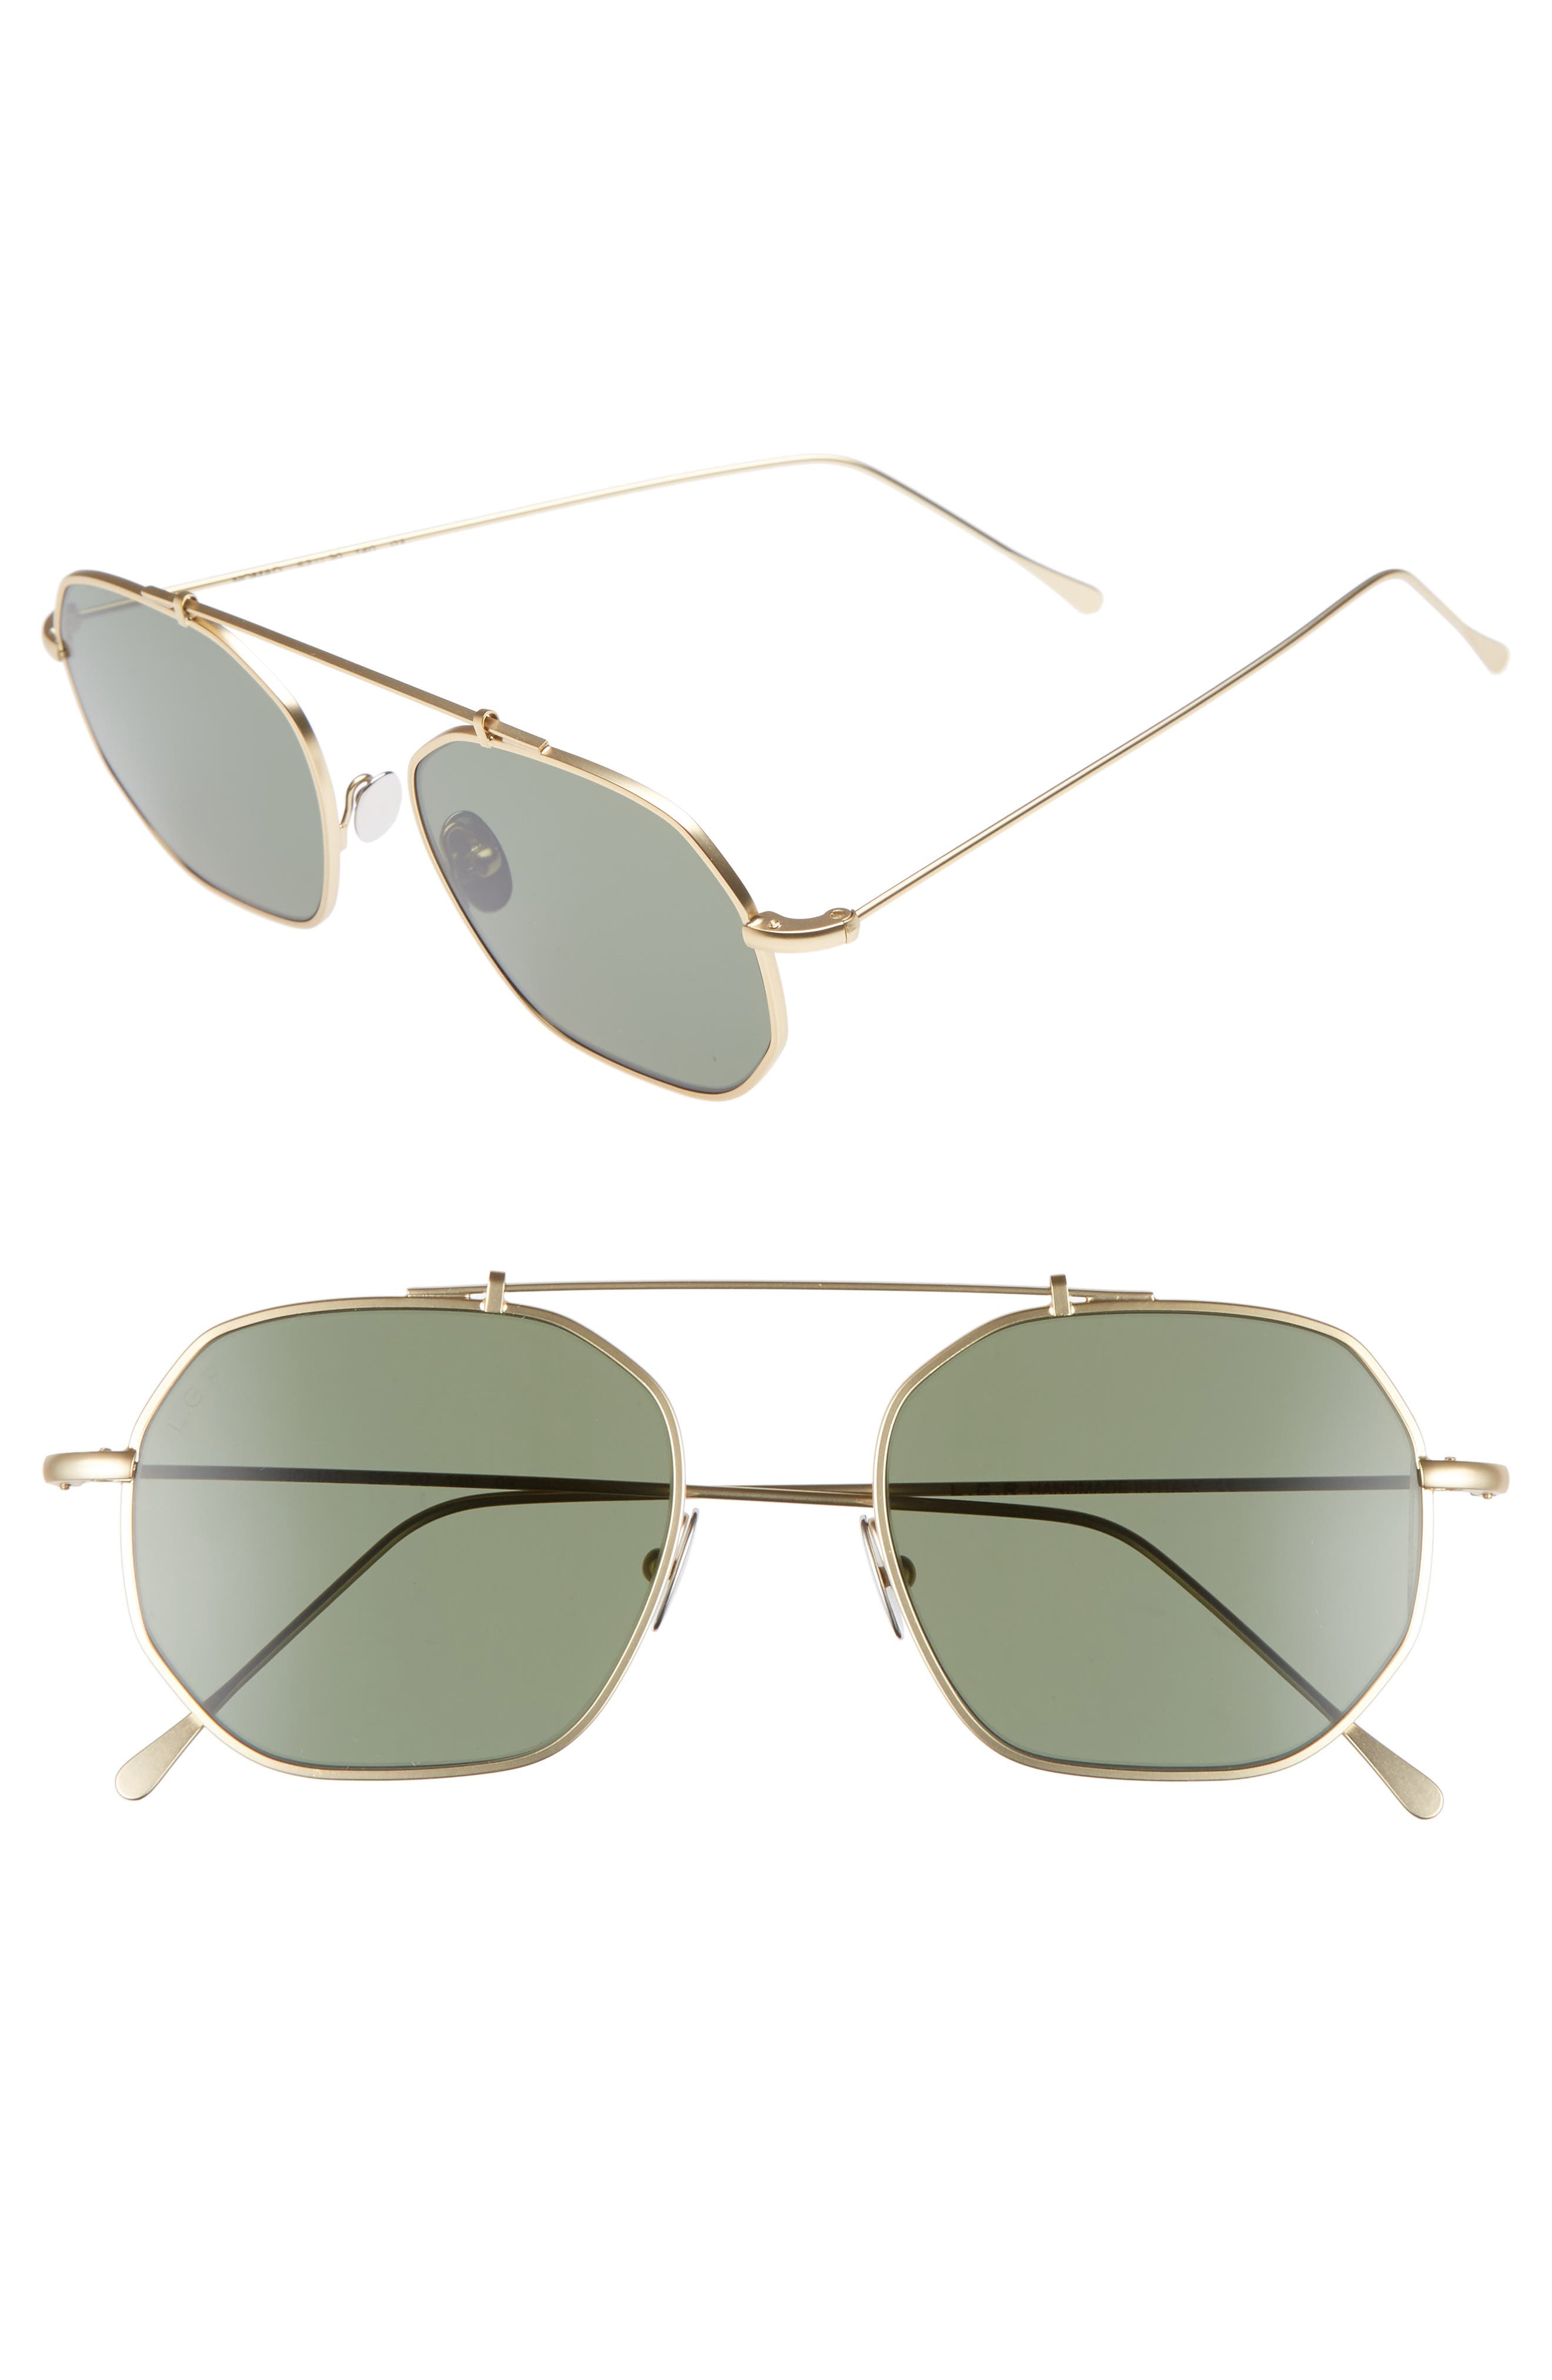 Nomad 52mm Sunglasses,                             Main thumbnail 1, color,                             Gold Matte/ Green